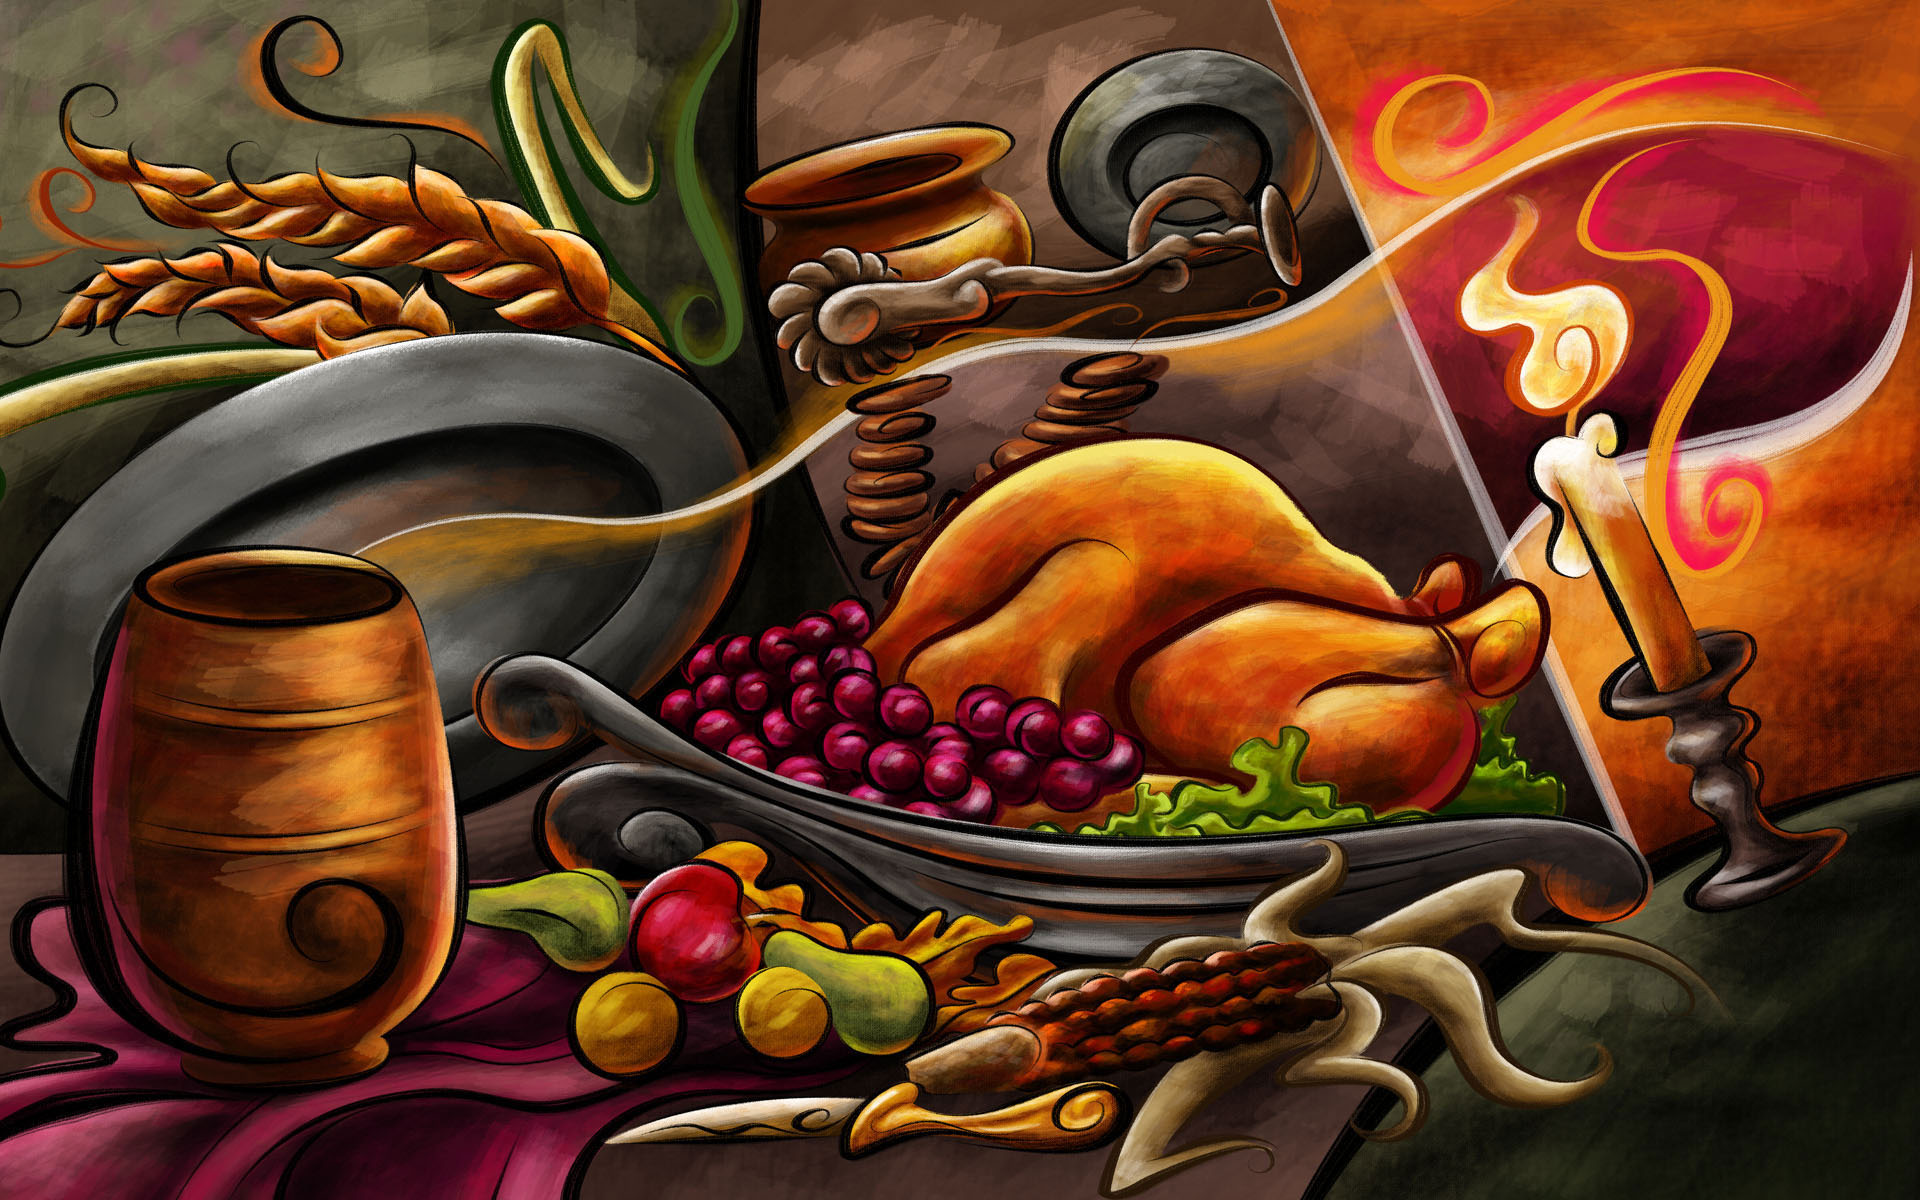 Thanksgiving Dinner Image  Holiday 2012 Wallpaper